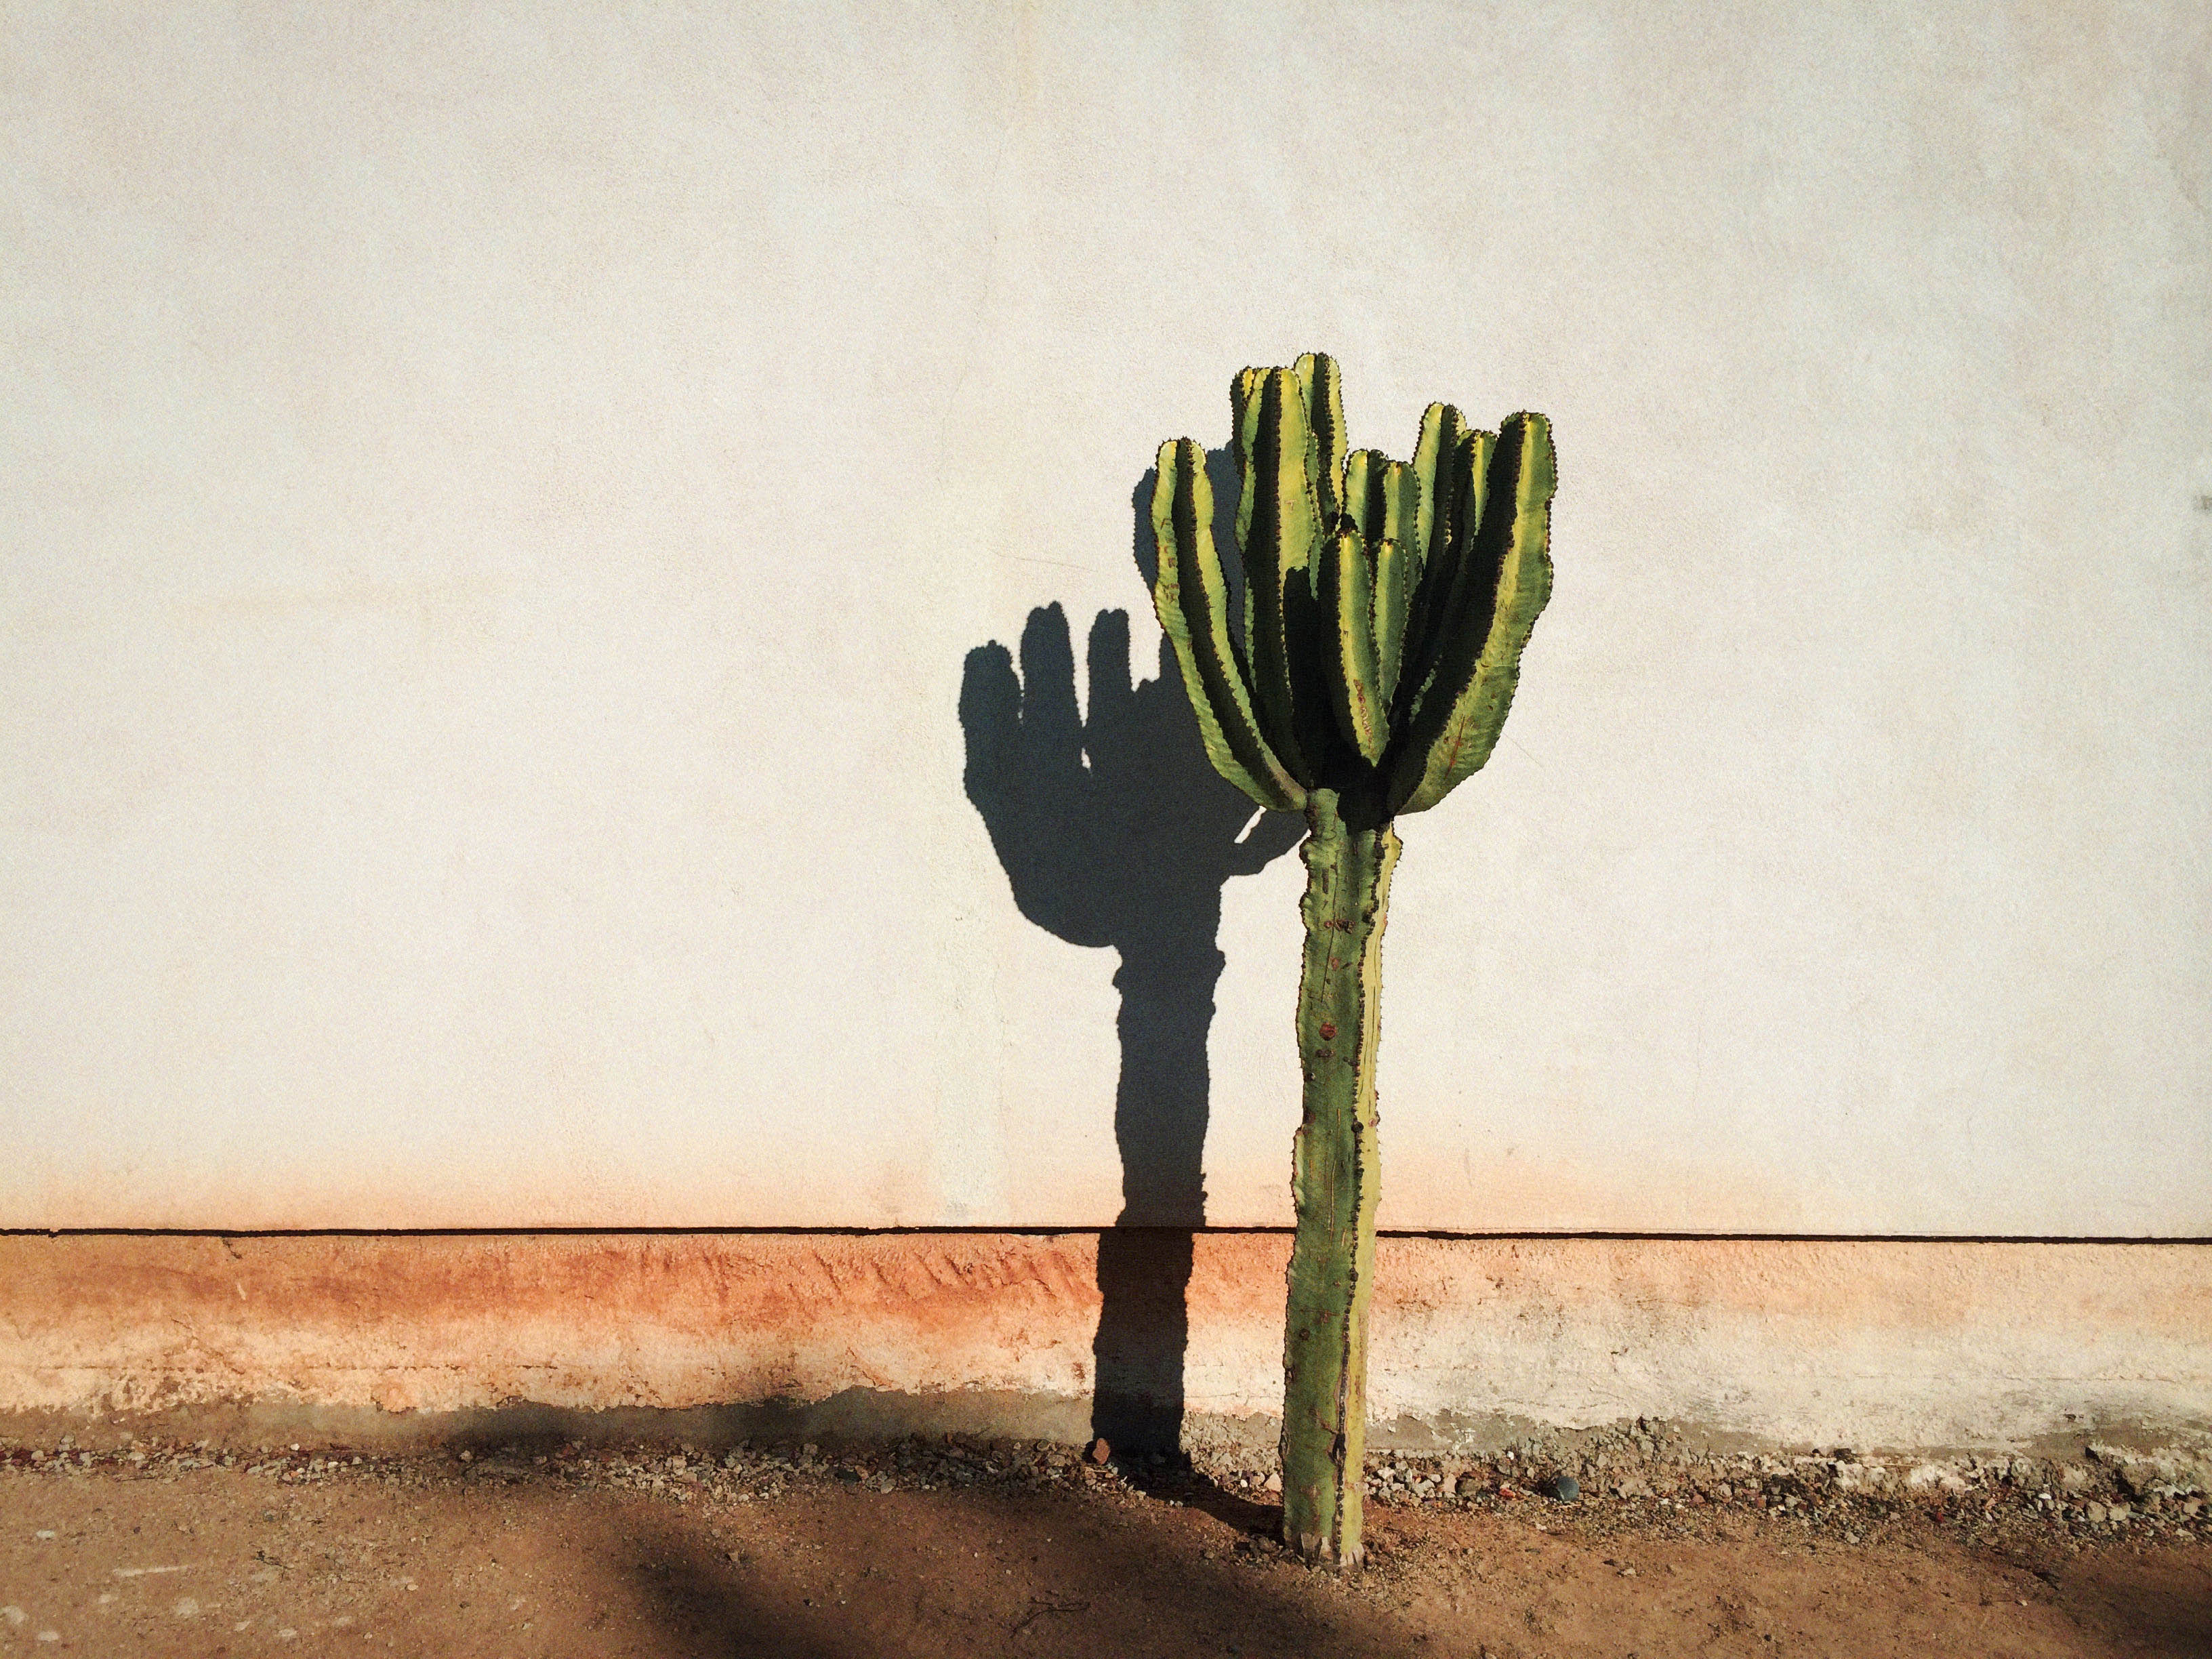 Cactus shadow on a wall, by David Trawin